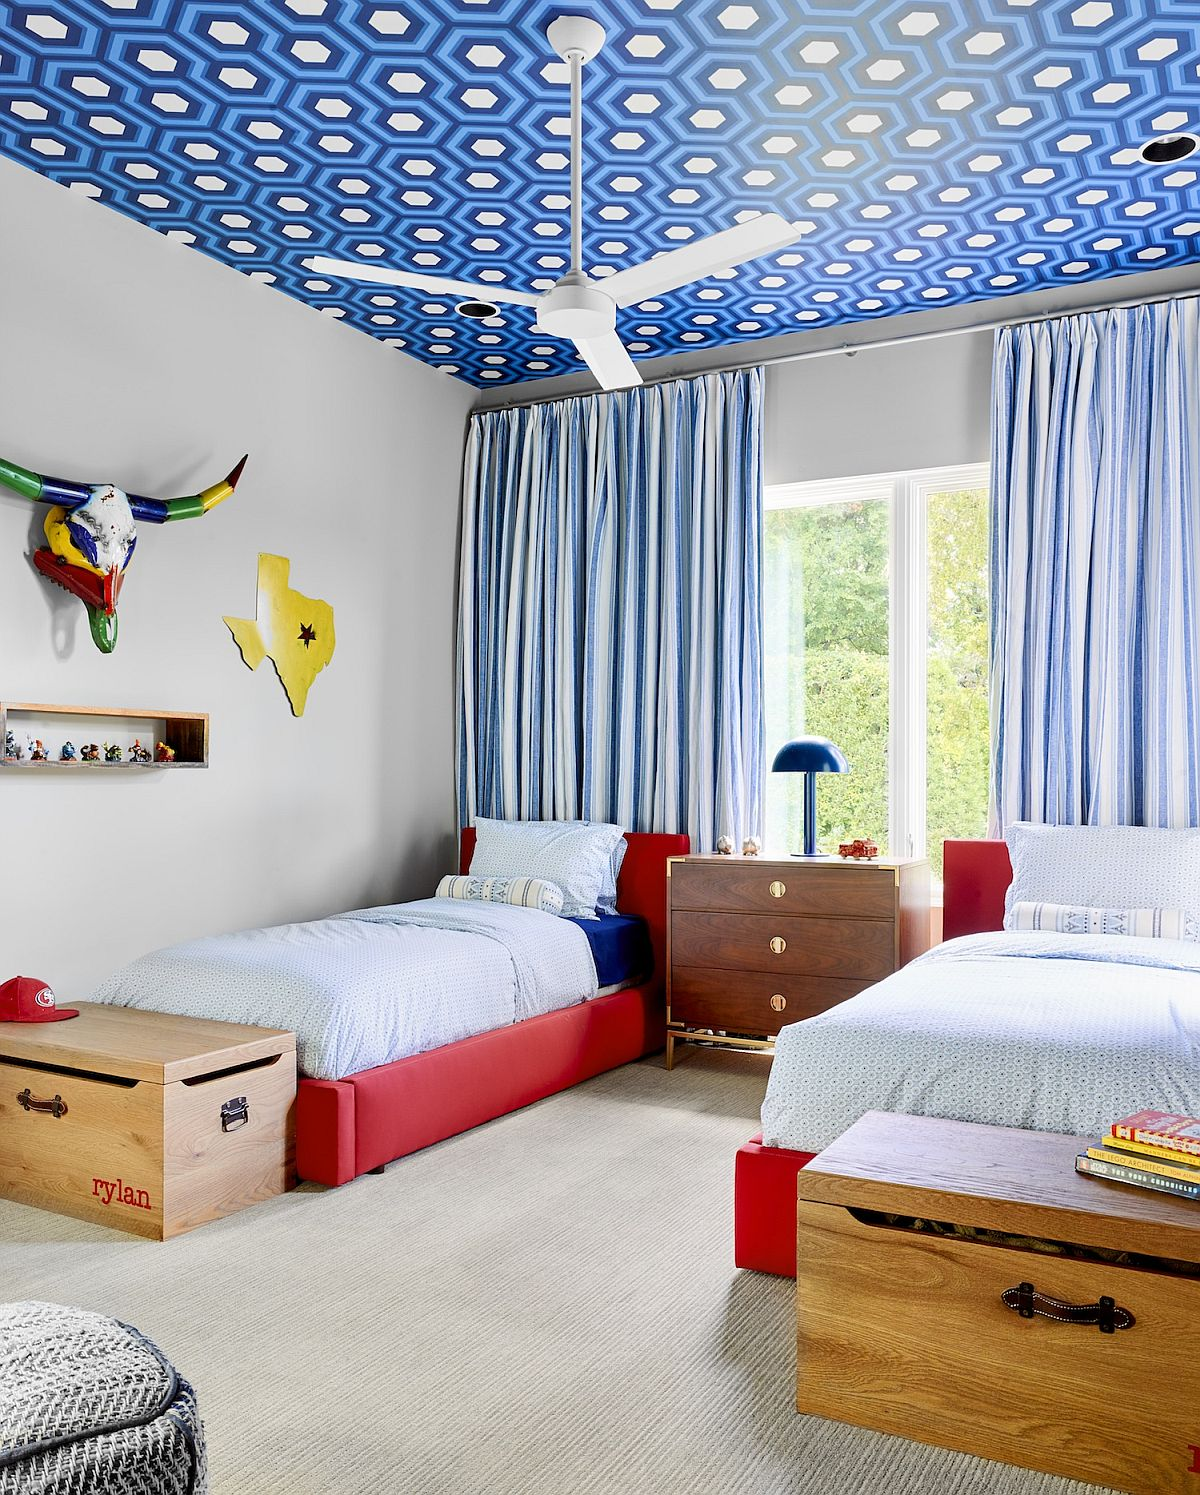 Hicks wallpaper for the ceiling brings brightness to the fabulous contemporary kids' bedroom with red bedframe